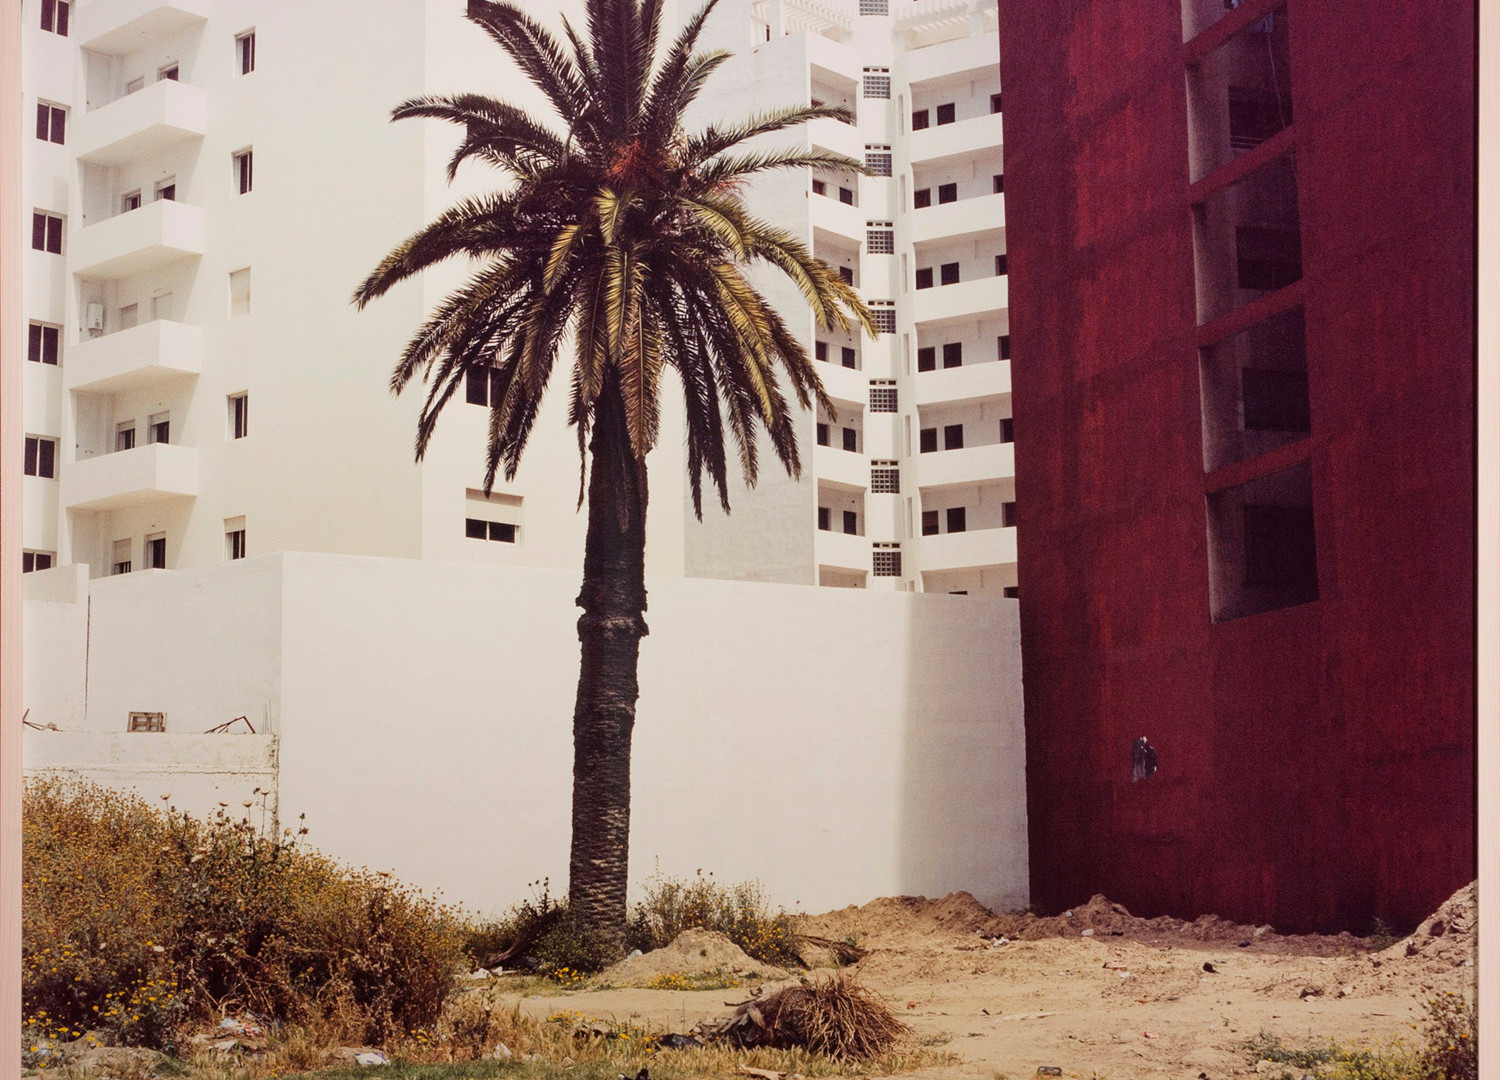 Yto Barrada, Terrain Vague No 4, Tangier (Vacant Plot No 4, Tangier), 2009